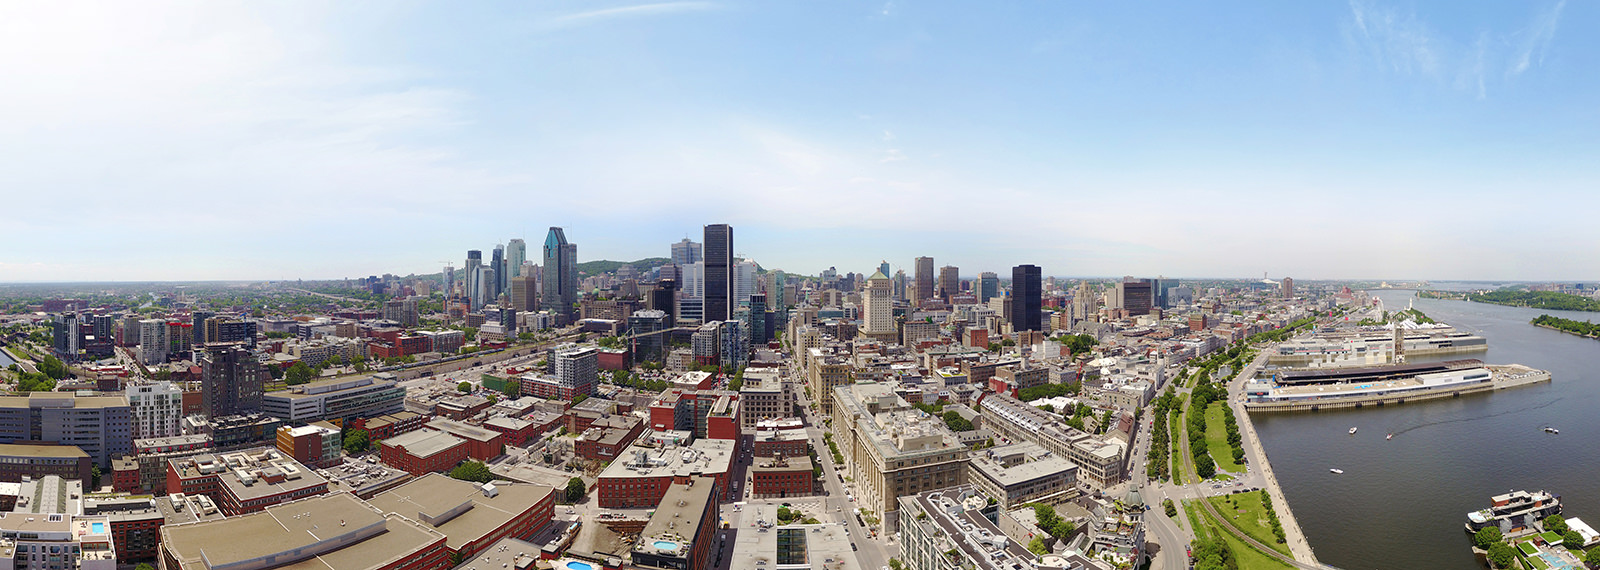 Montreal Vieux-Port, Downtown, Quebec - Panorama 360°